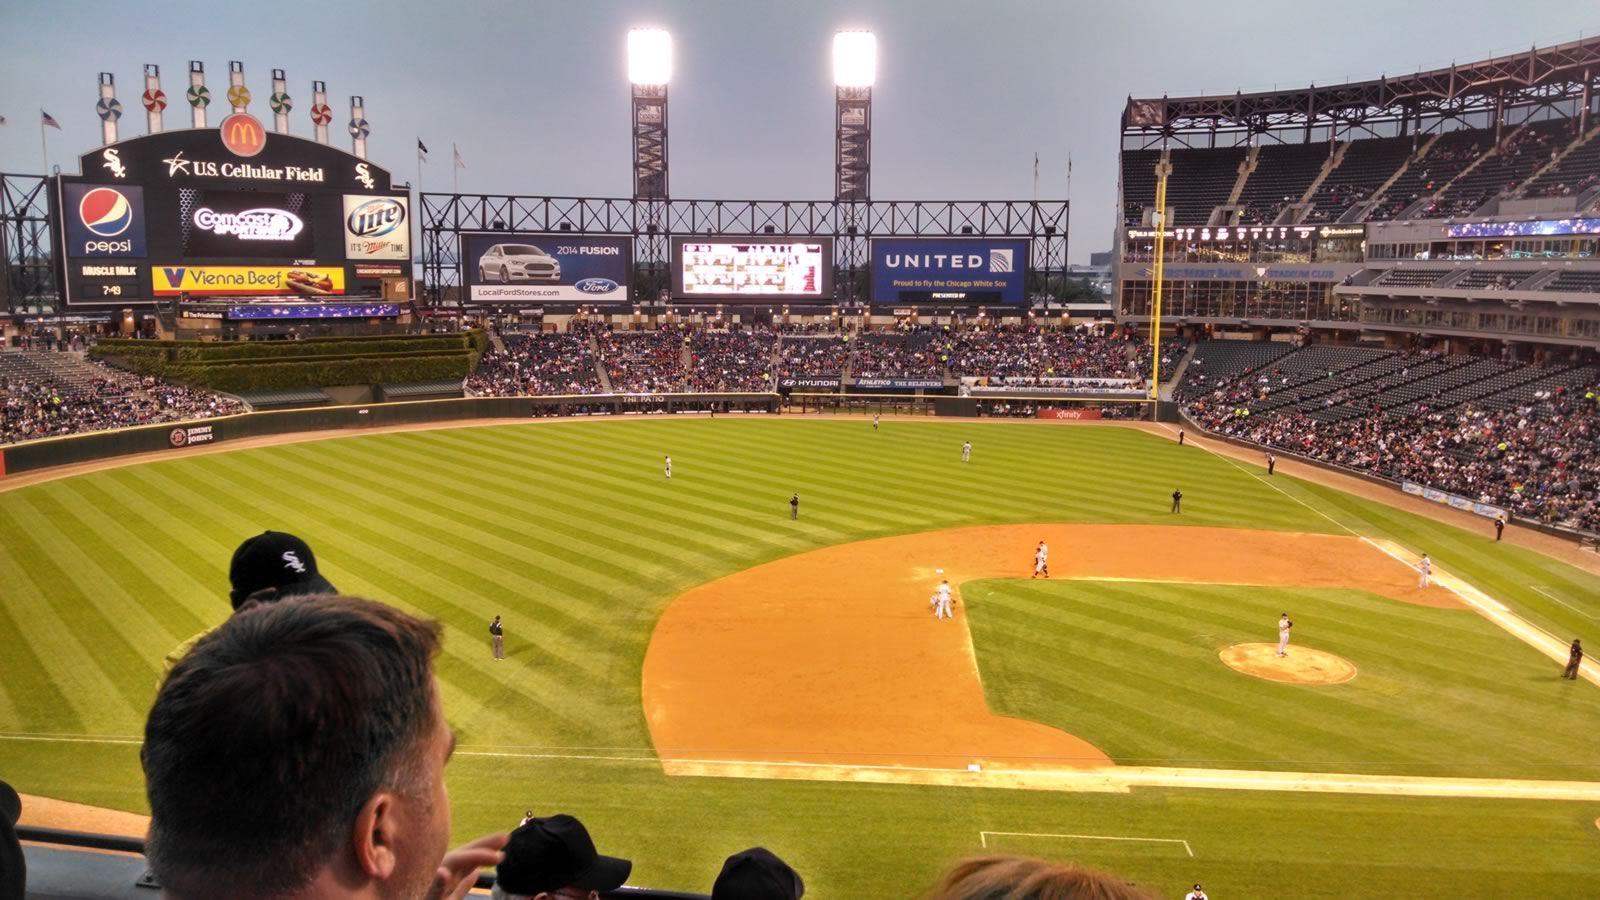 Seat View for Guaranteed Rate Field Section 340, Row 4, Seat 11